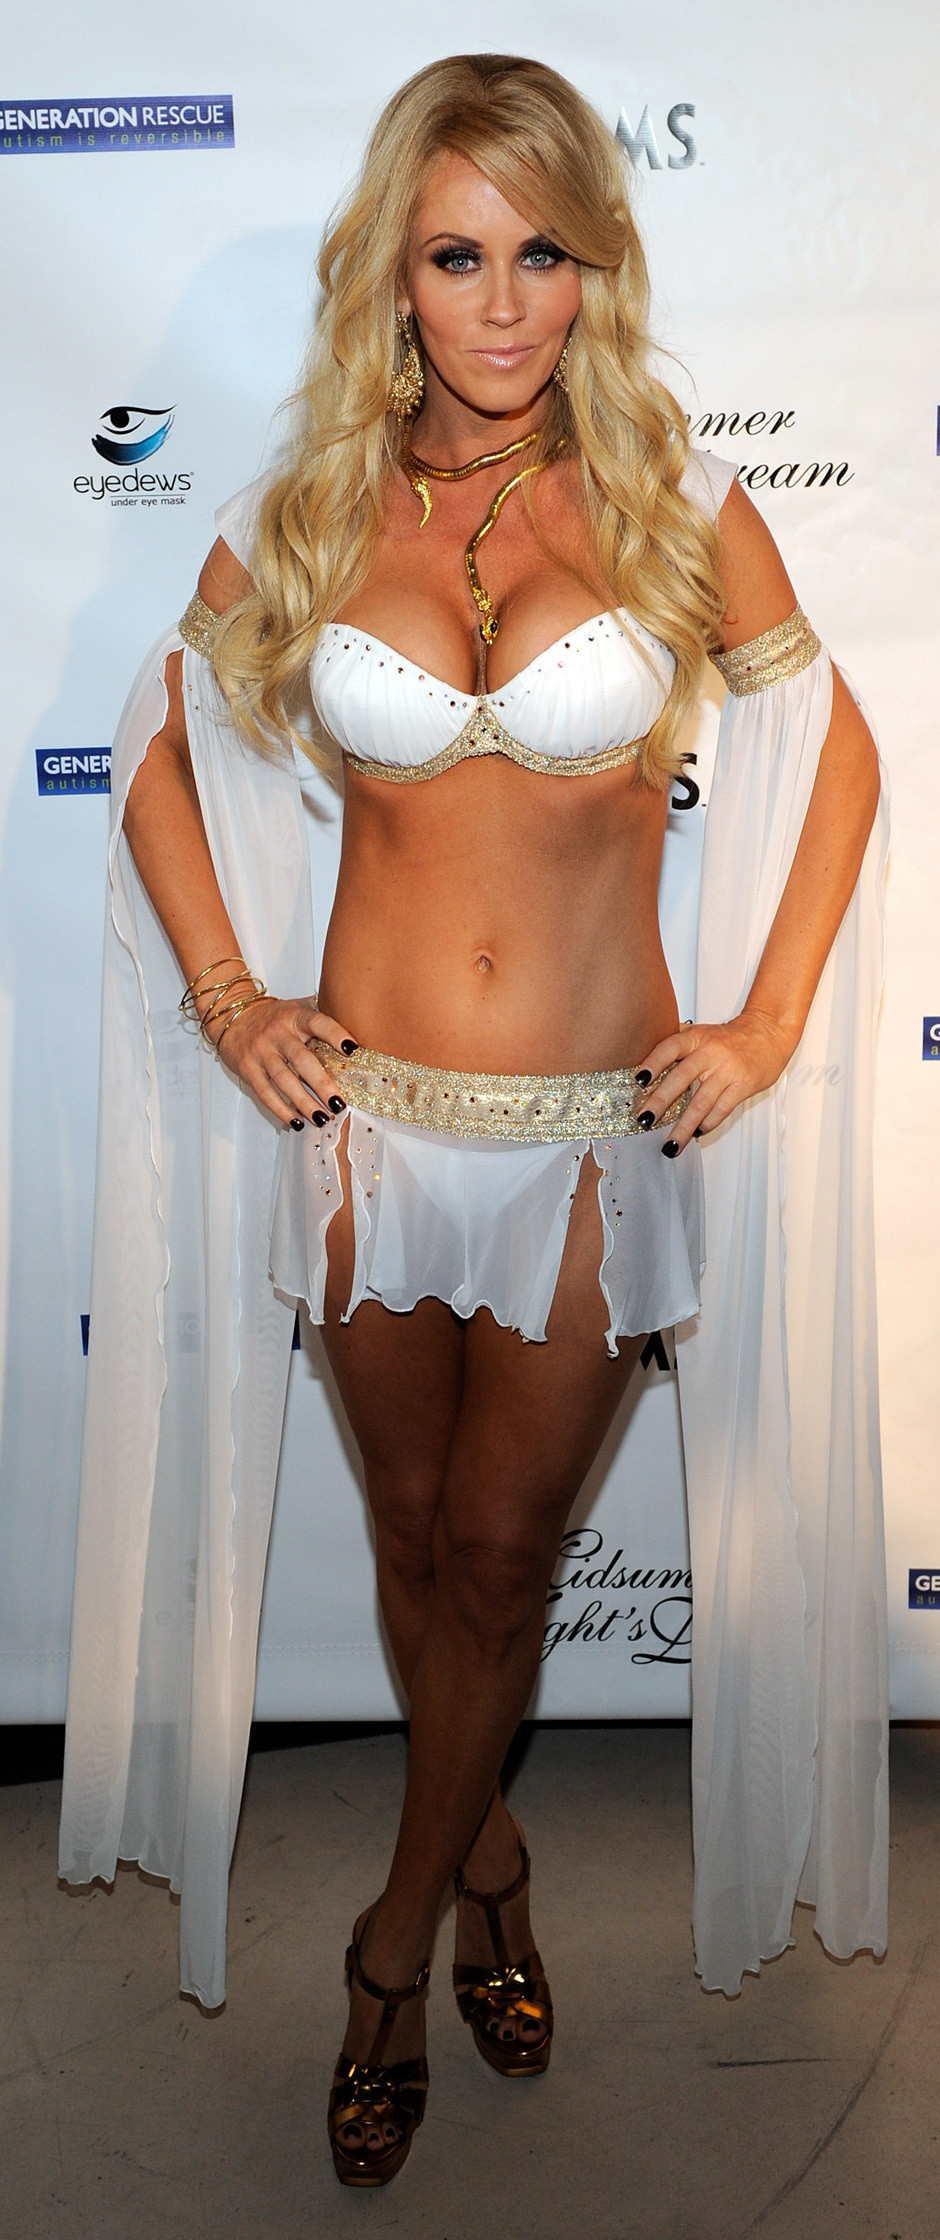 Jenny McCarthy Hosts Vegas Bash In Genie Outfit (PHOTOS)